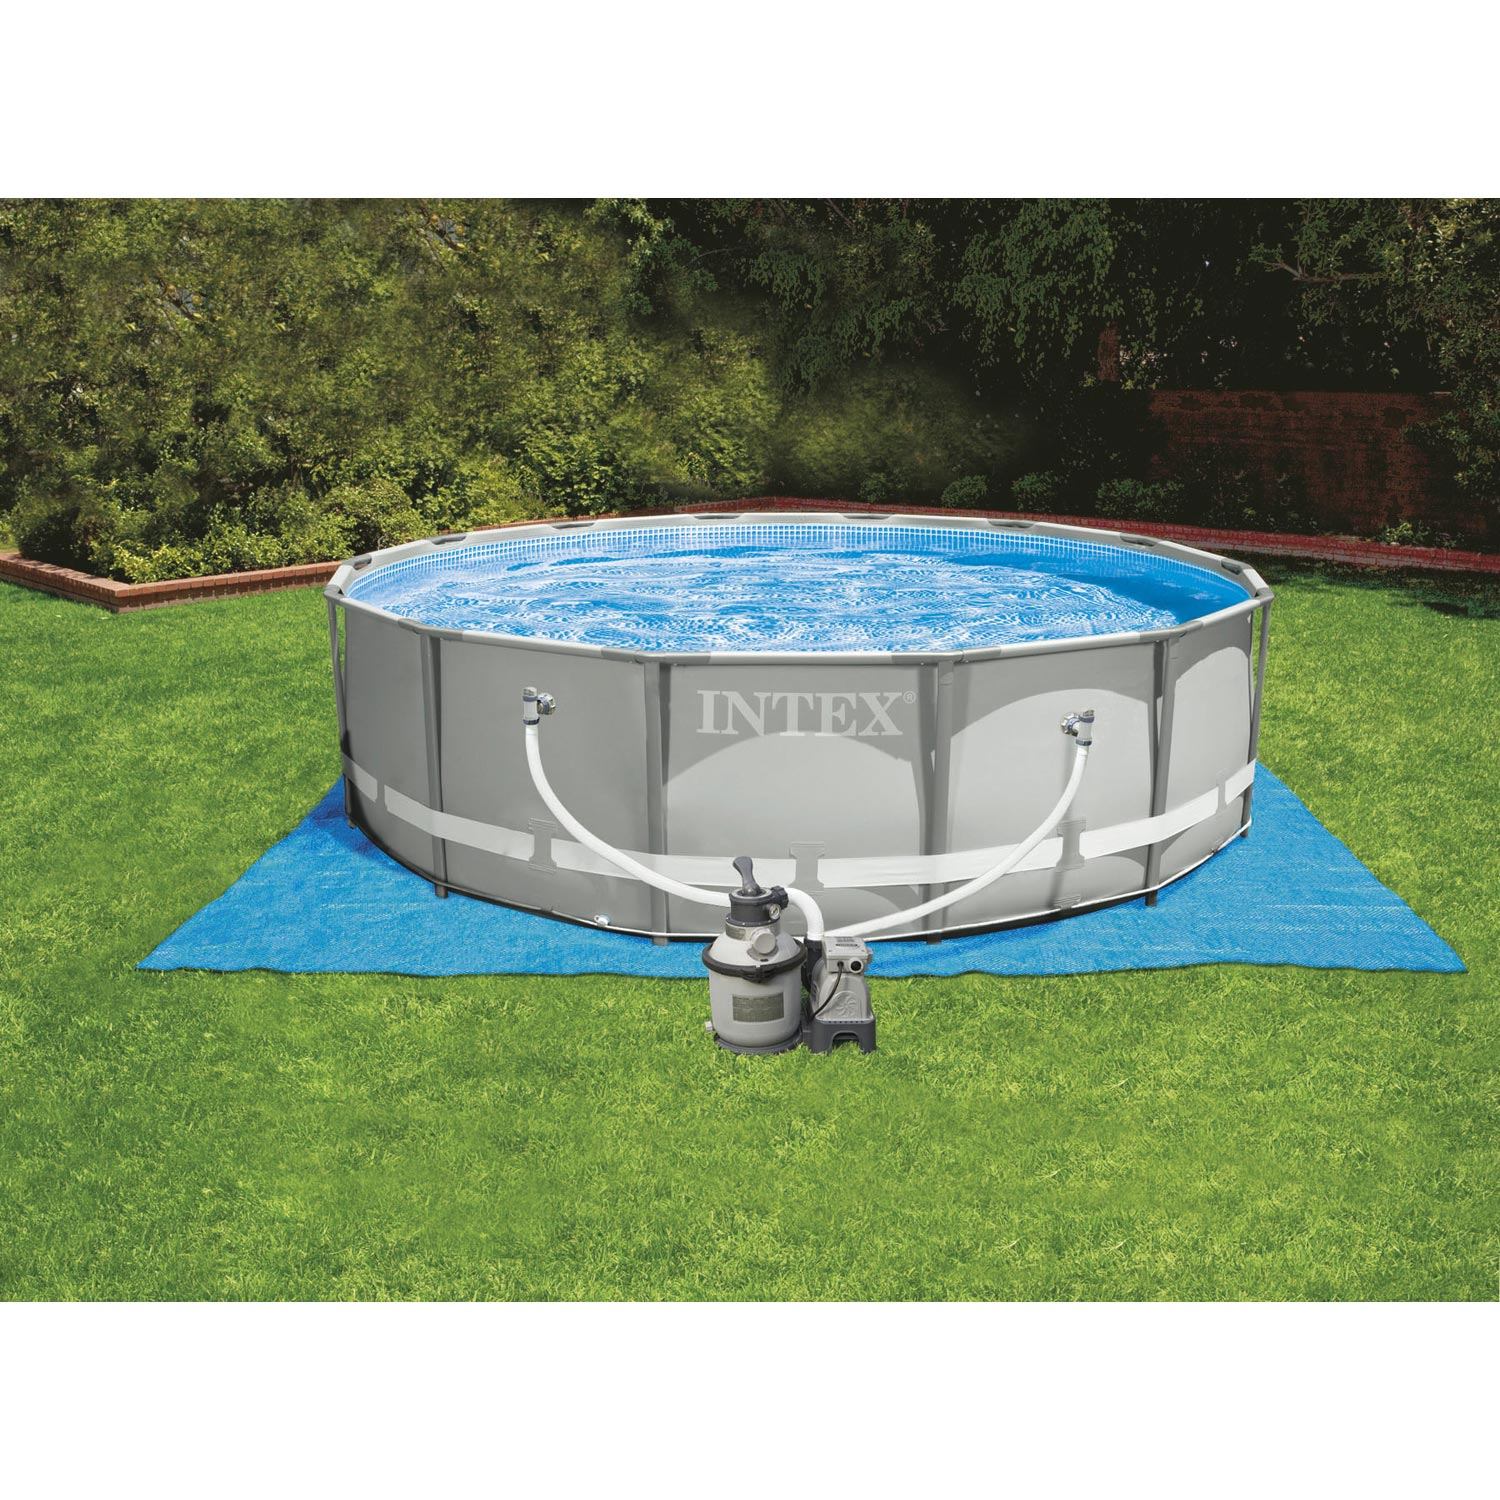 Piscine hors sol autoportante tubulaire ultra frame intex for Piscine hors sol lyon